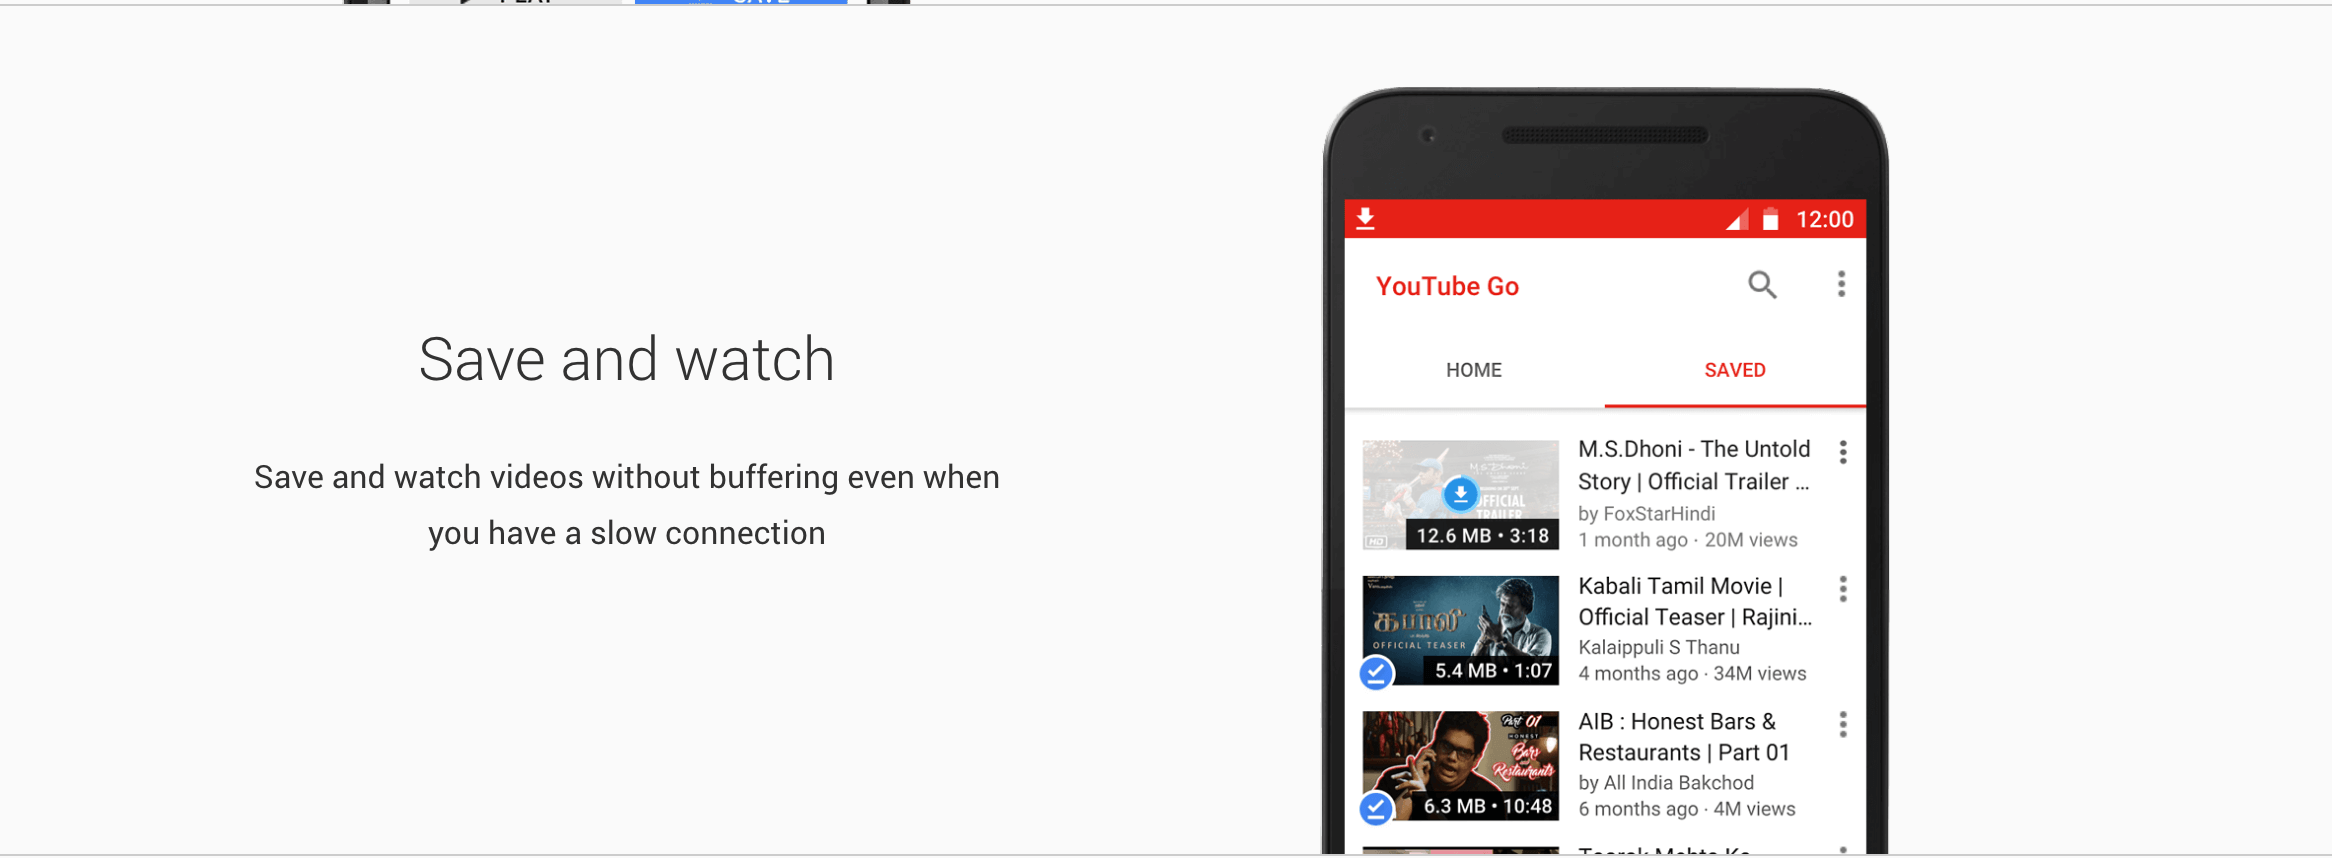 Youtube Go Features